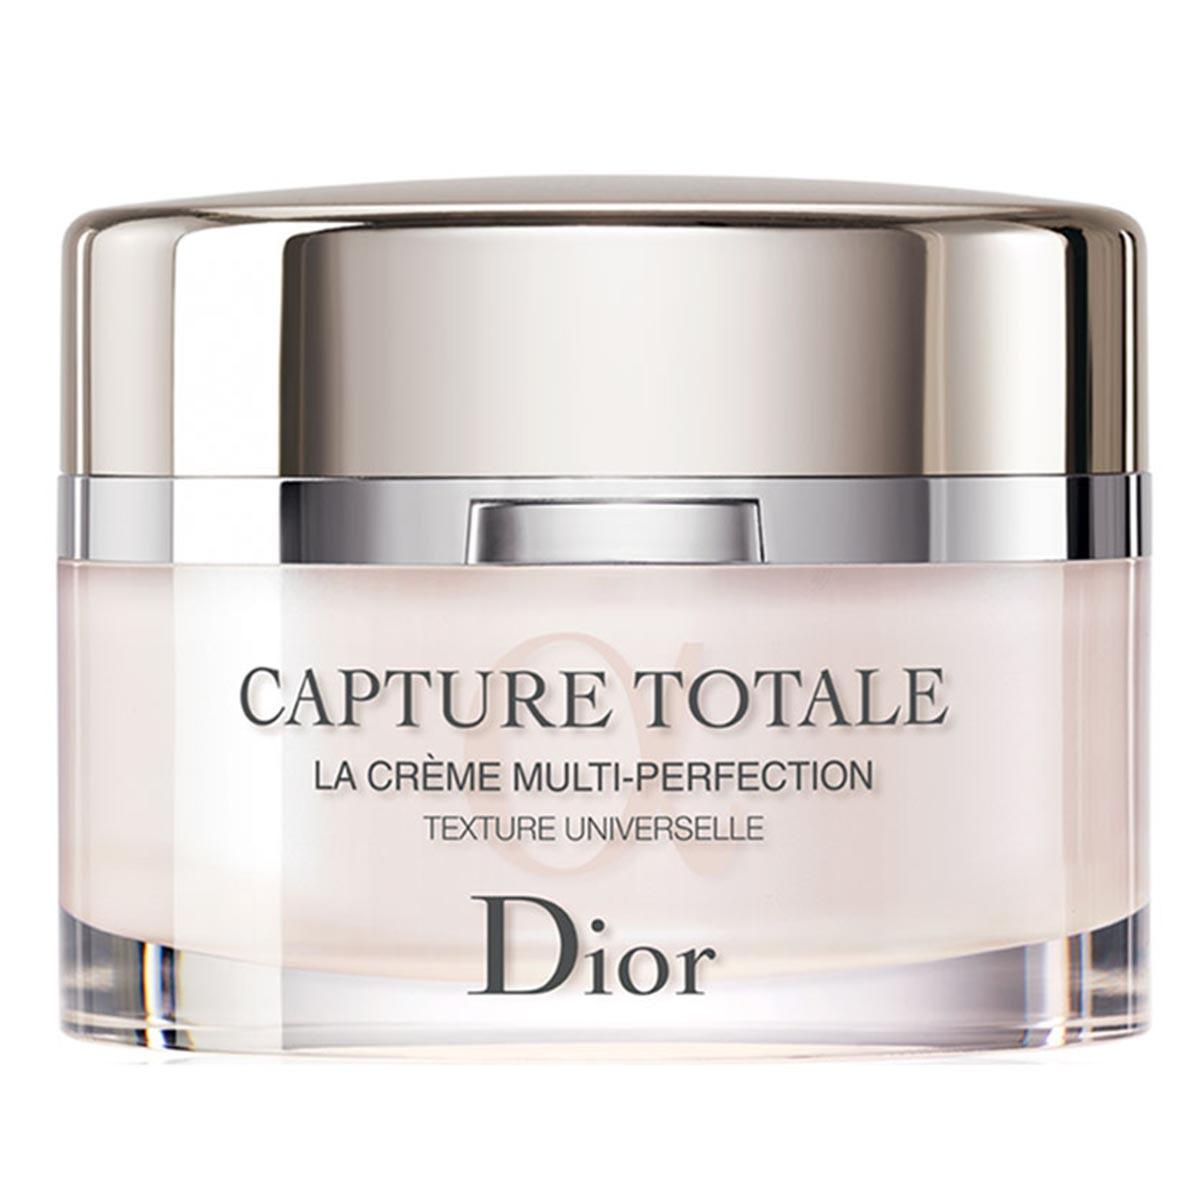 Christian dior fragrances Capture Totale La Creme Multiperfection Texture Universelle Cream60ml